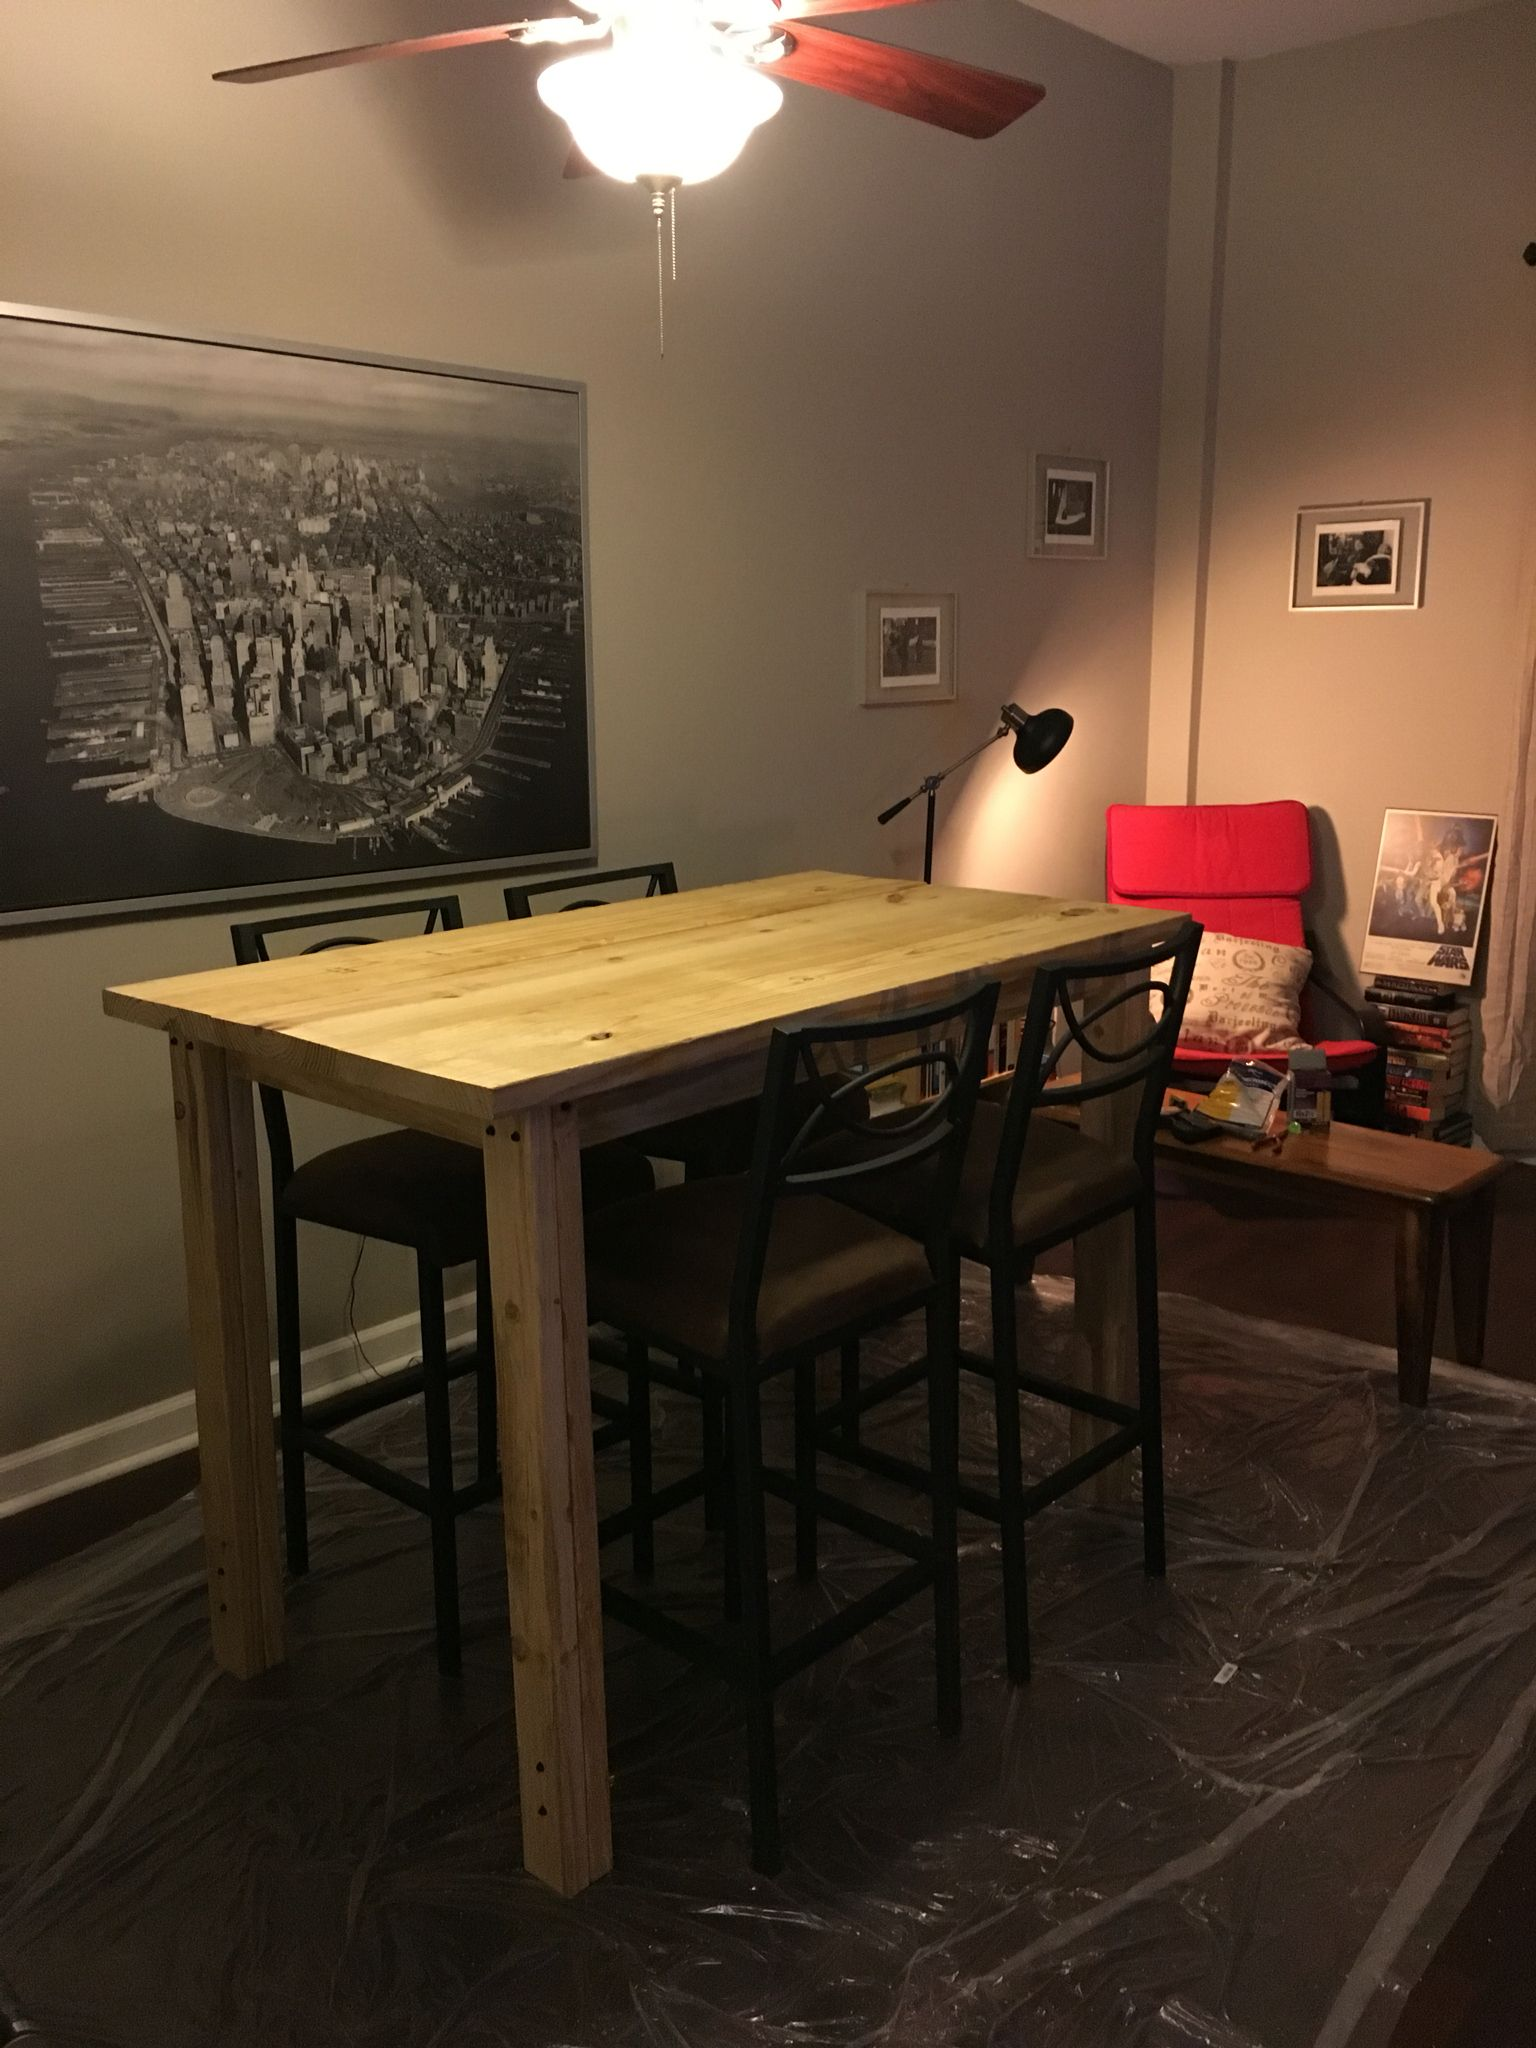 Diy Bar Height Farmhouse Table Lumber Supplies From Lowe S Cost